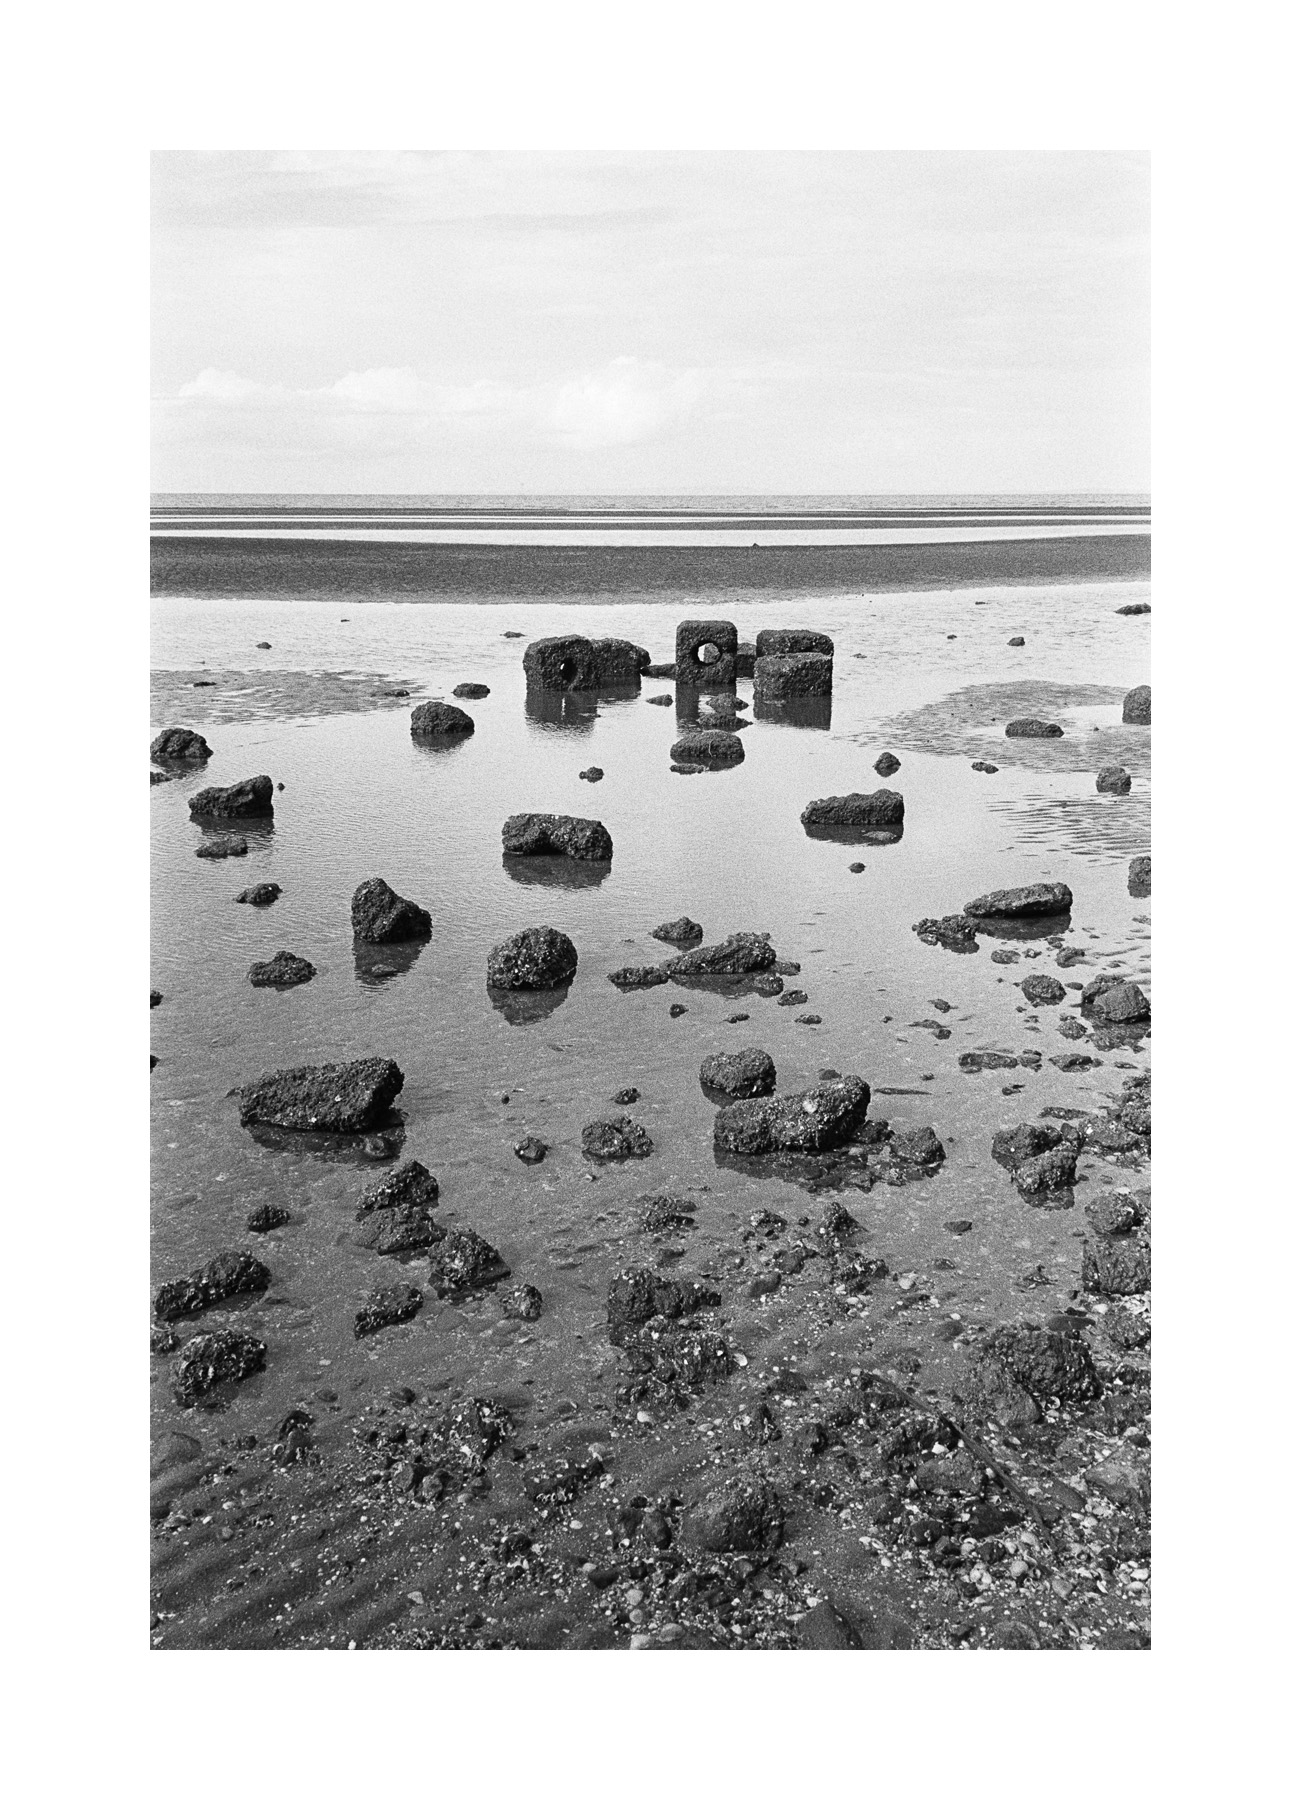 2018106 - Roll 252 - 018-Nick-Bedford,-Photographer-Black and White, Kodak TRI-X 400, Landscape Photography, Leica M7, Seascape, Shorncliffe, Voigtlander 35mm F1.7.jpg